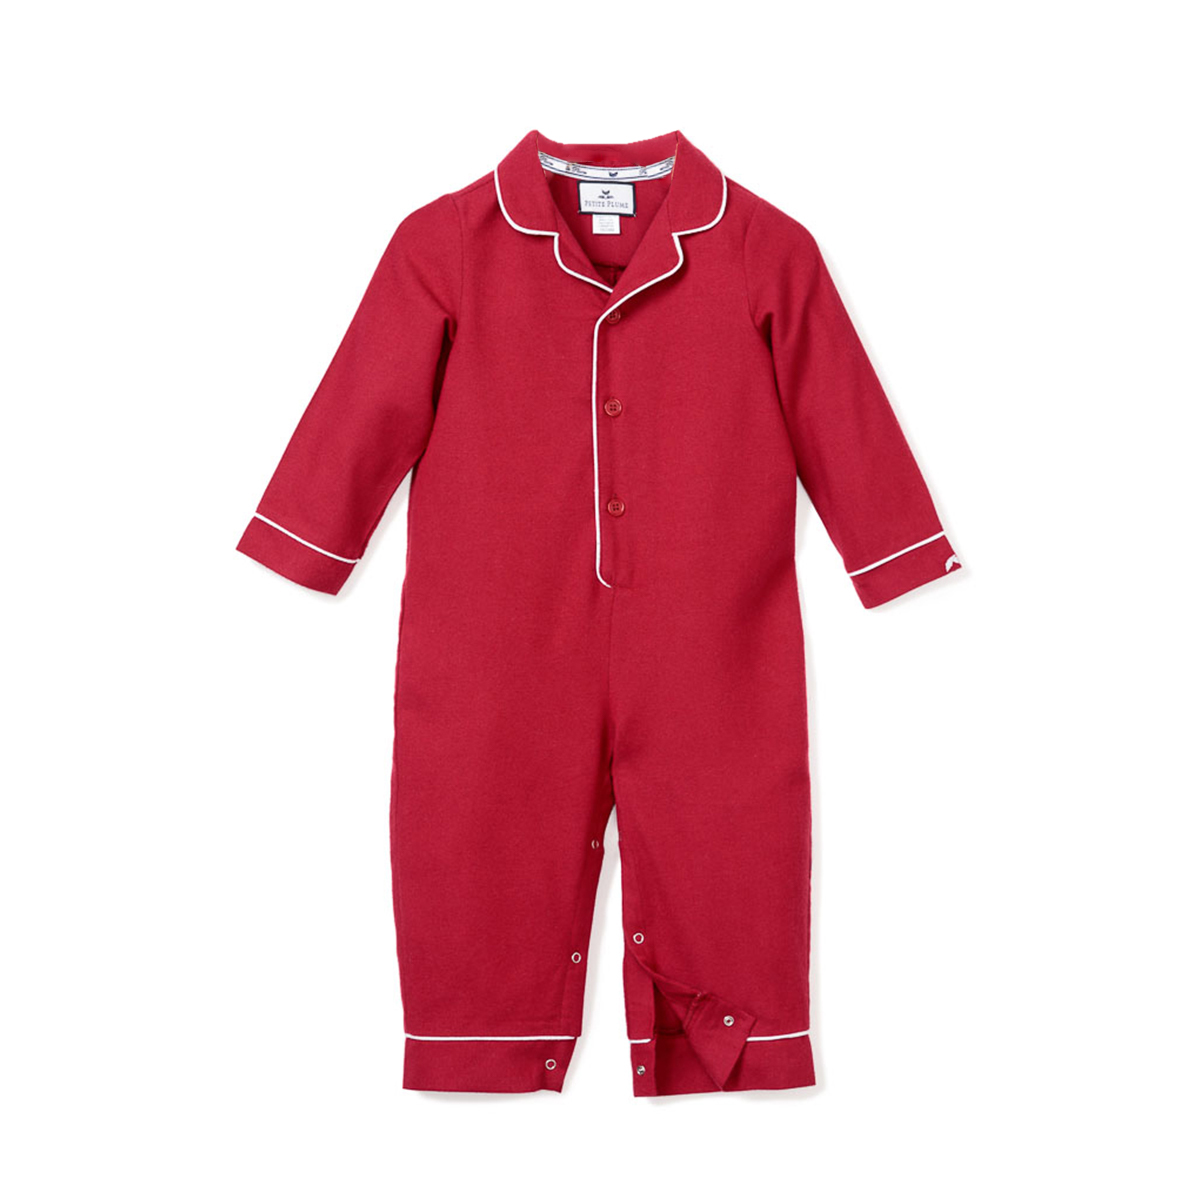 Petite Plume Red Flannel Romper with White Piping